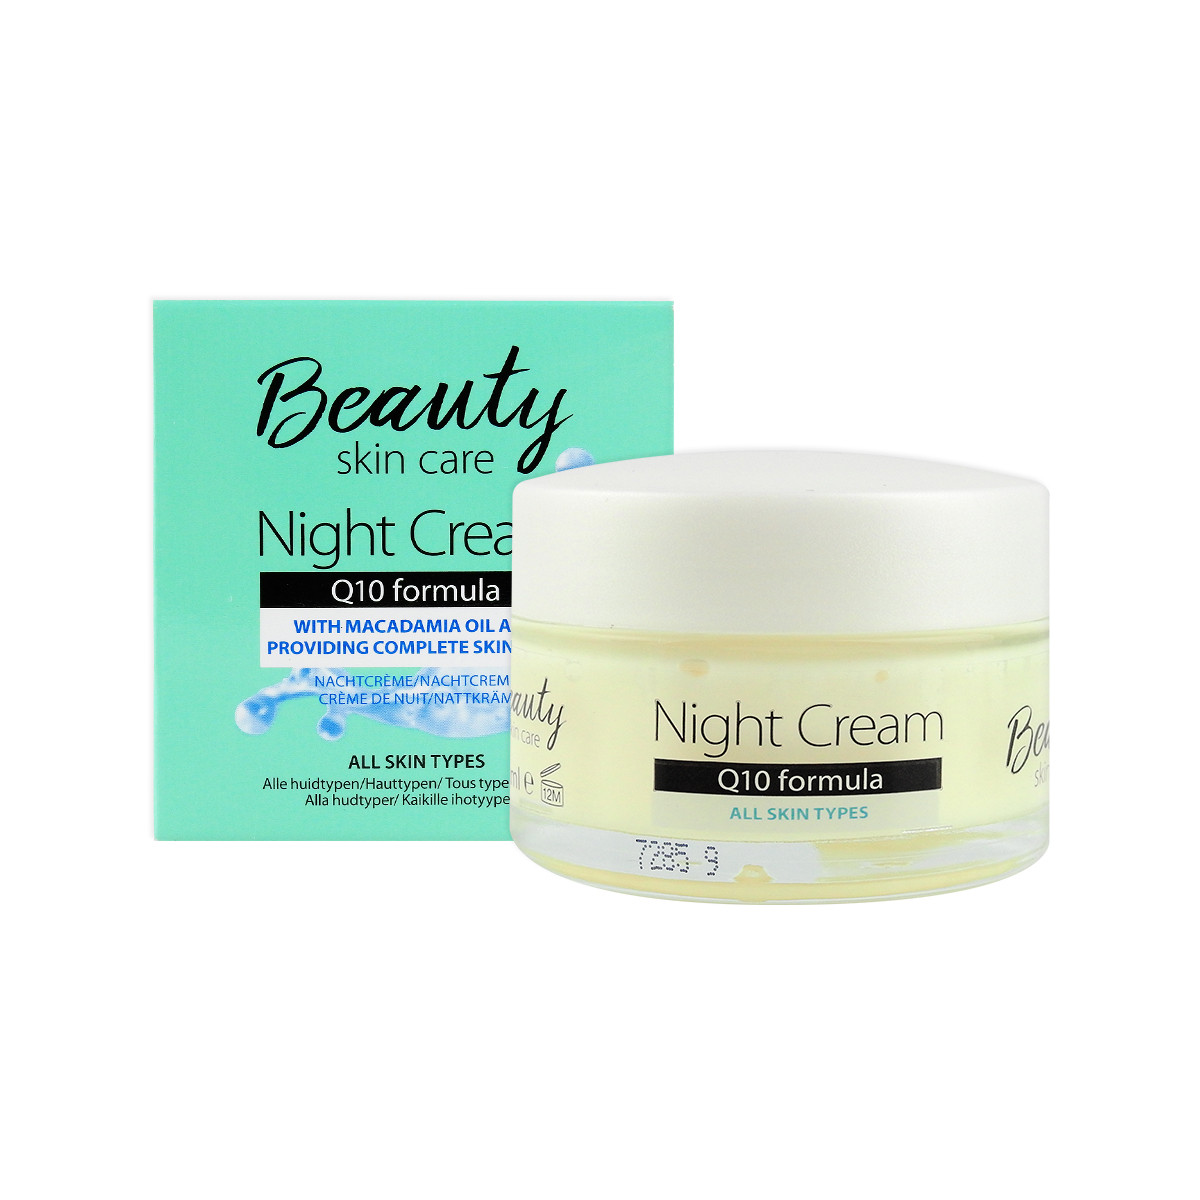 image of 歐洲 Beauty Skin Care Q10緊實活膚晚霜50ml     Europe Beauty Skin Care Night Cream Q10 Formula 50ml